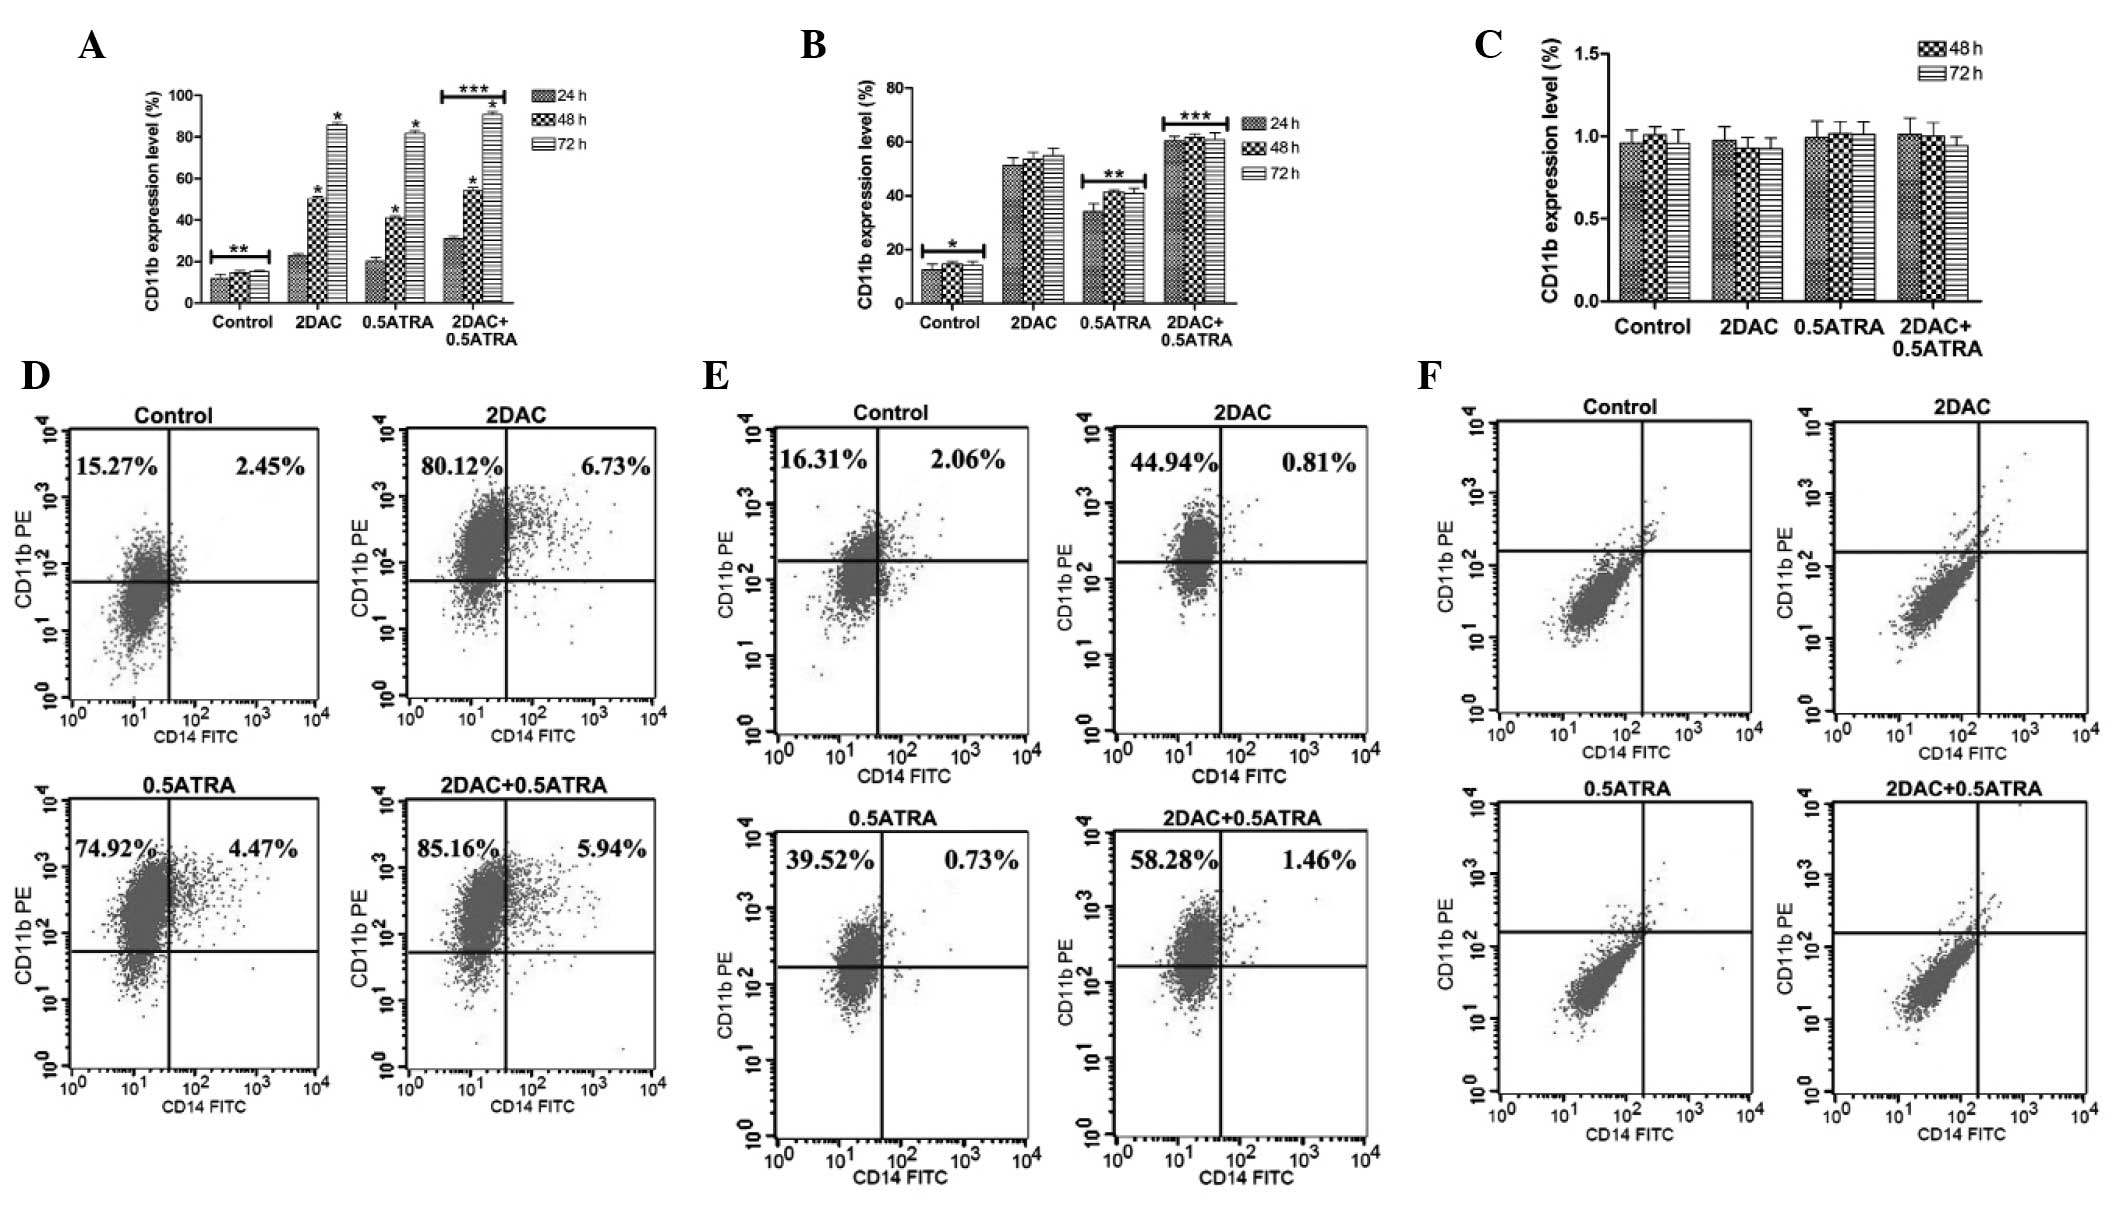 changes in expression of wt1 during induced